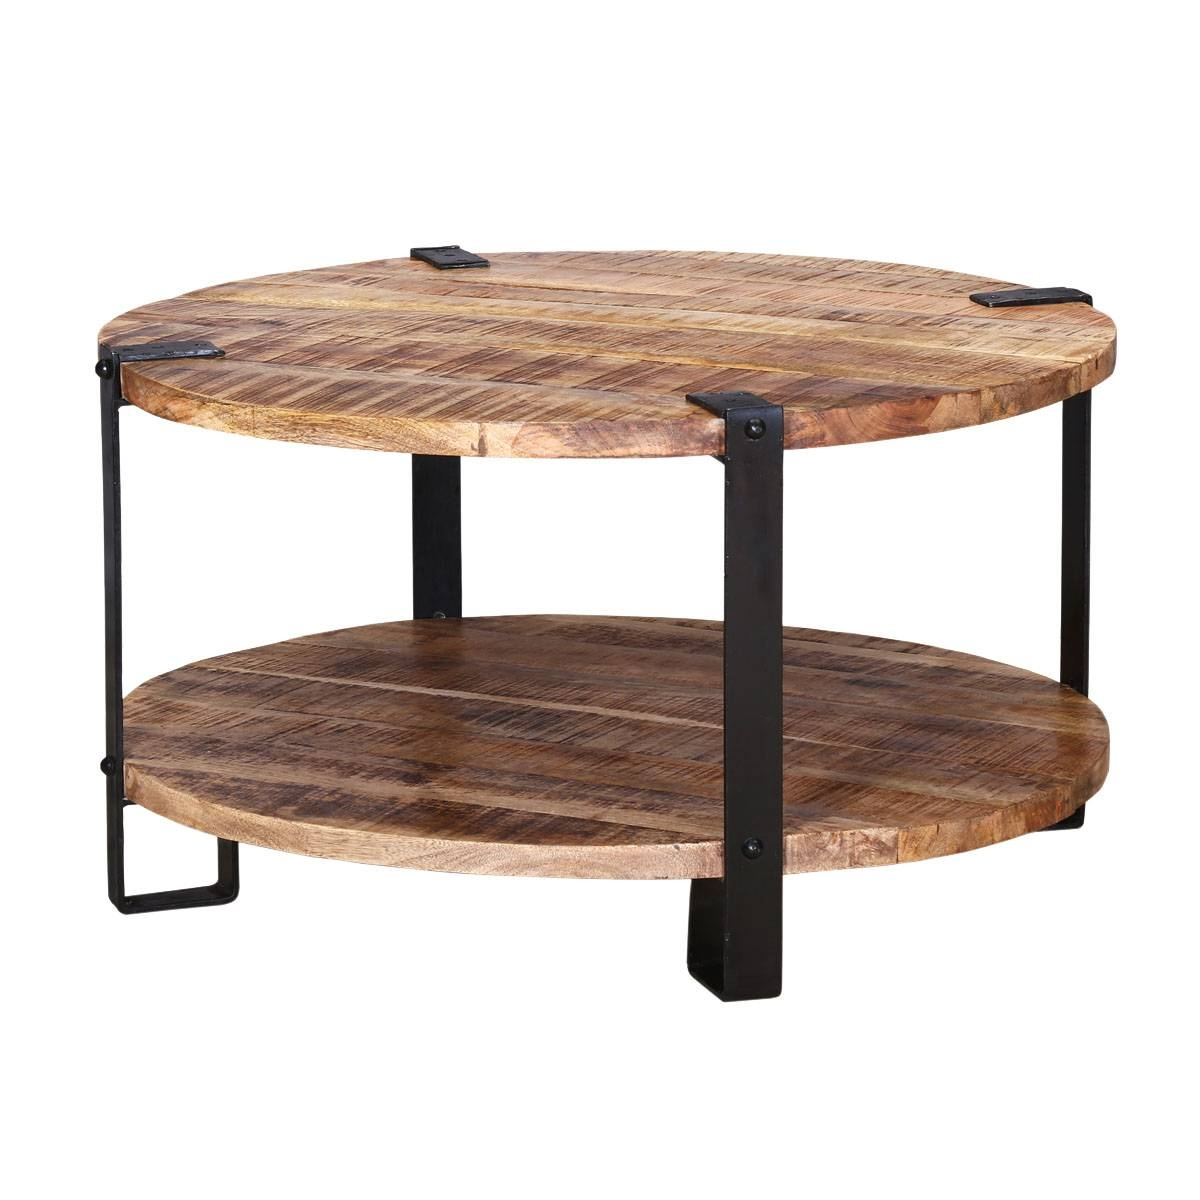 Rustic Beach Coffee Table 15 Collection Of Industrial Round Coffee Tables